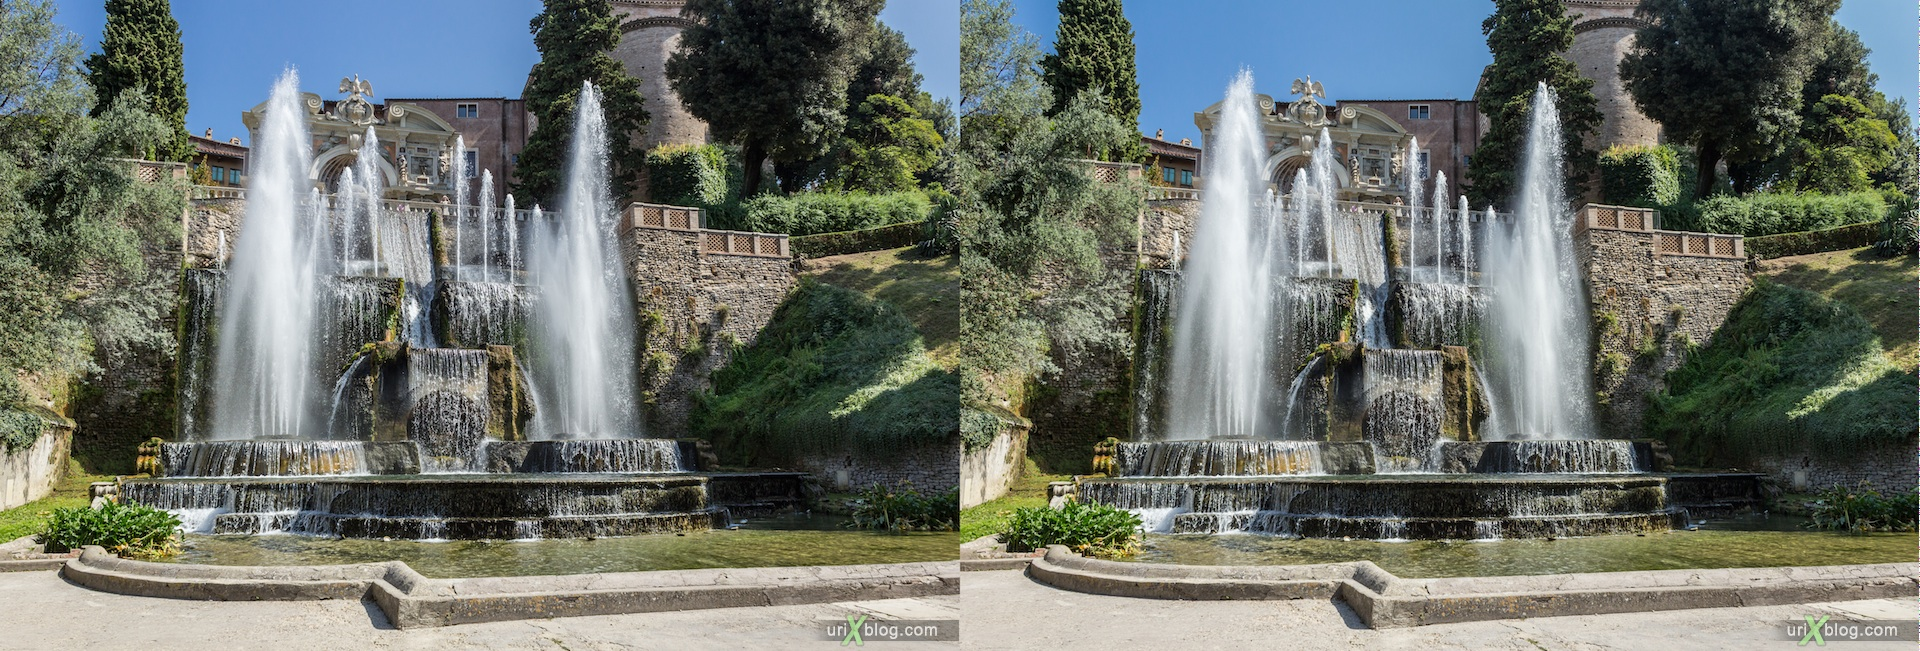 2012, Fountain of Neptune, villa D'Este, Italy, Tivoli, Rome, 3D, stereo pair, cross-eyed, crossview, cross view stereo pair